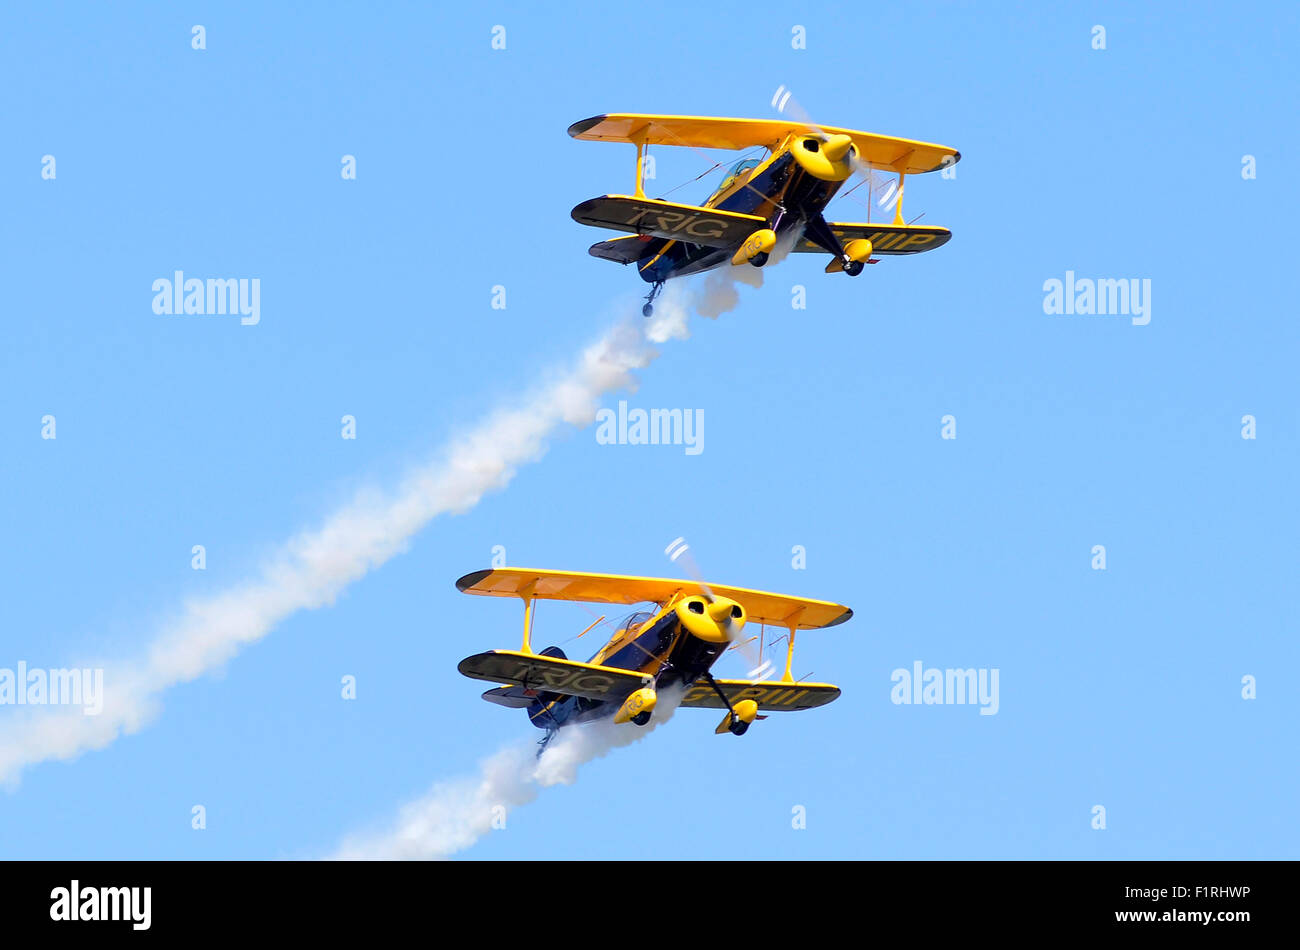 Trig Aerobatic Team's Pitts S-1D Specials in formation, Cosby Victory Show, Leicestershire, UK, 2015. Credit: - Stock Image